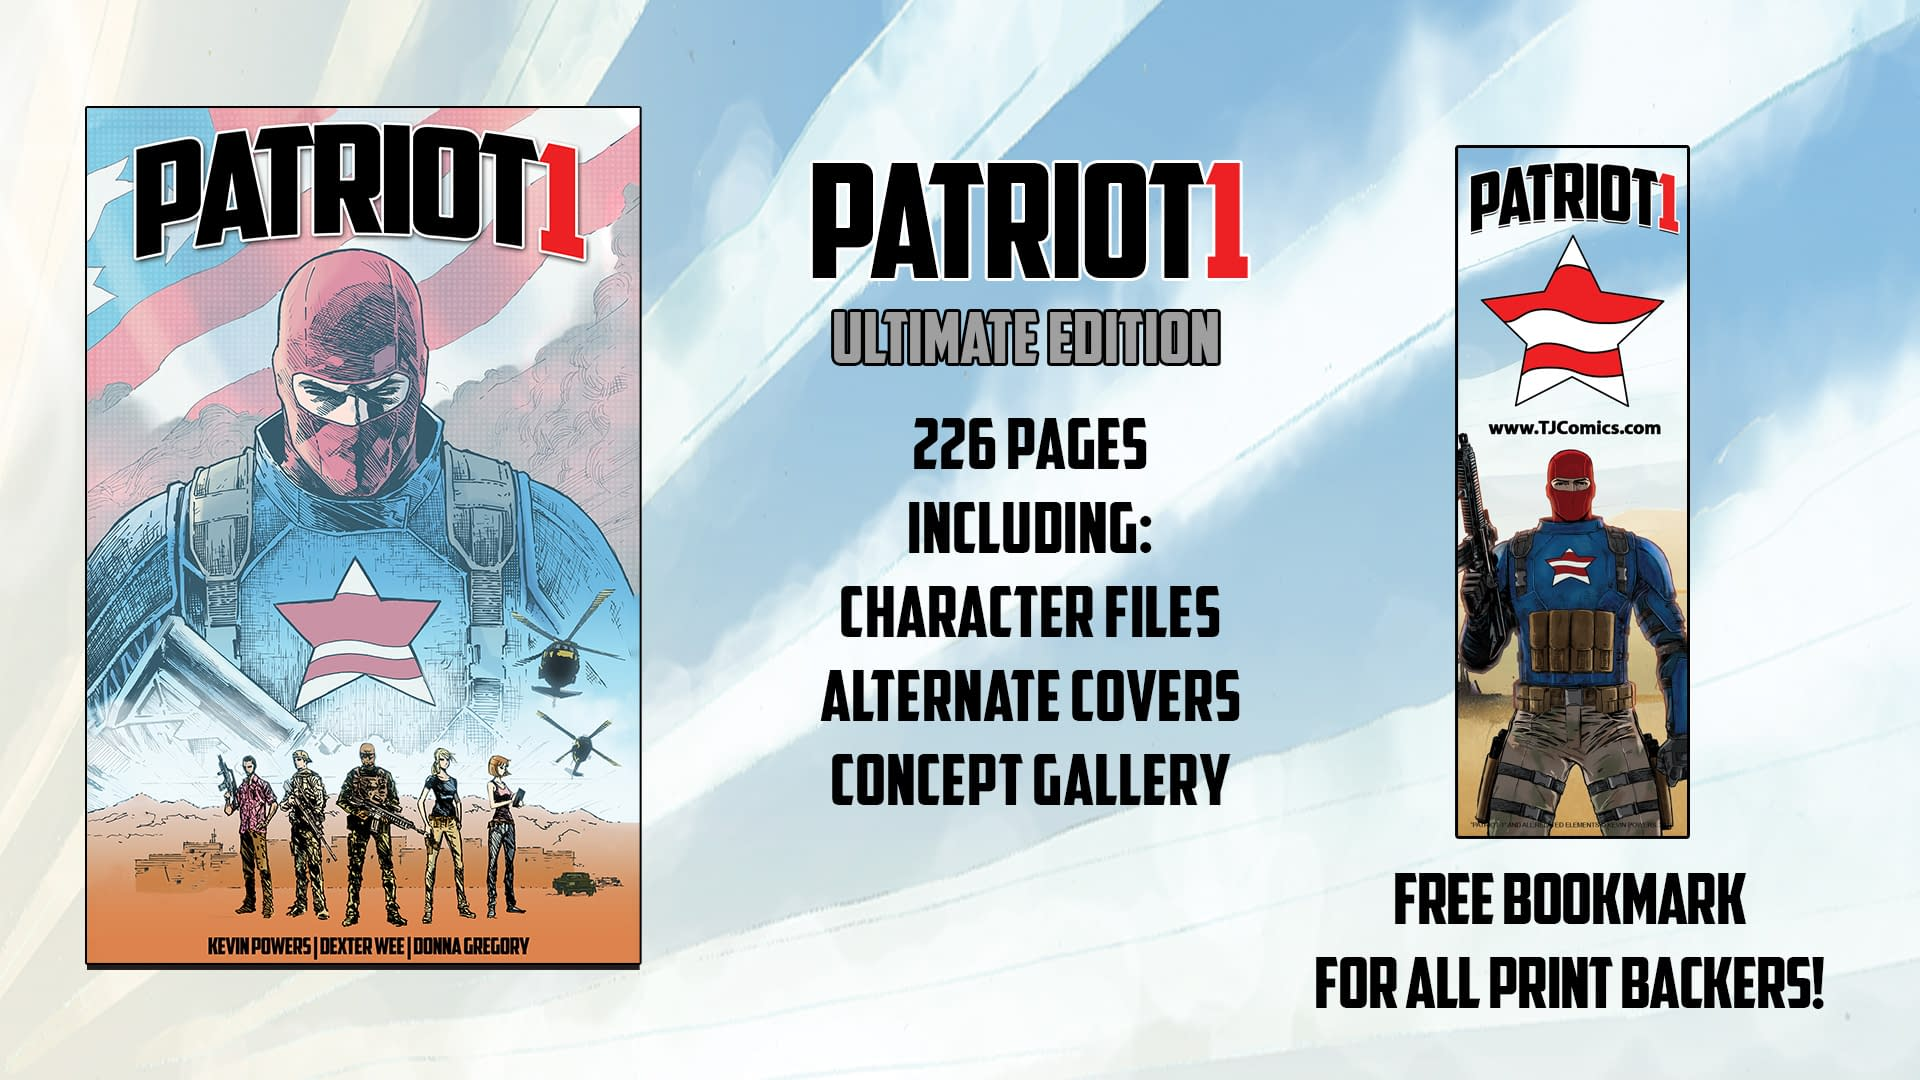 Patriot-1 is the Book America -- and the World -- Needs Right Now